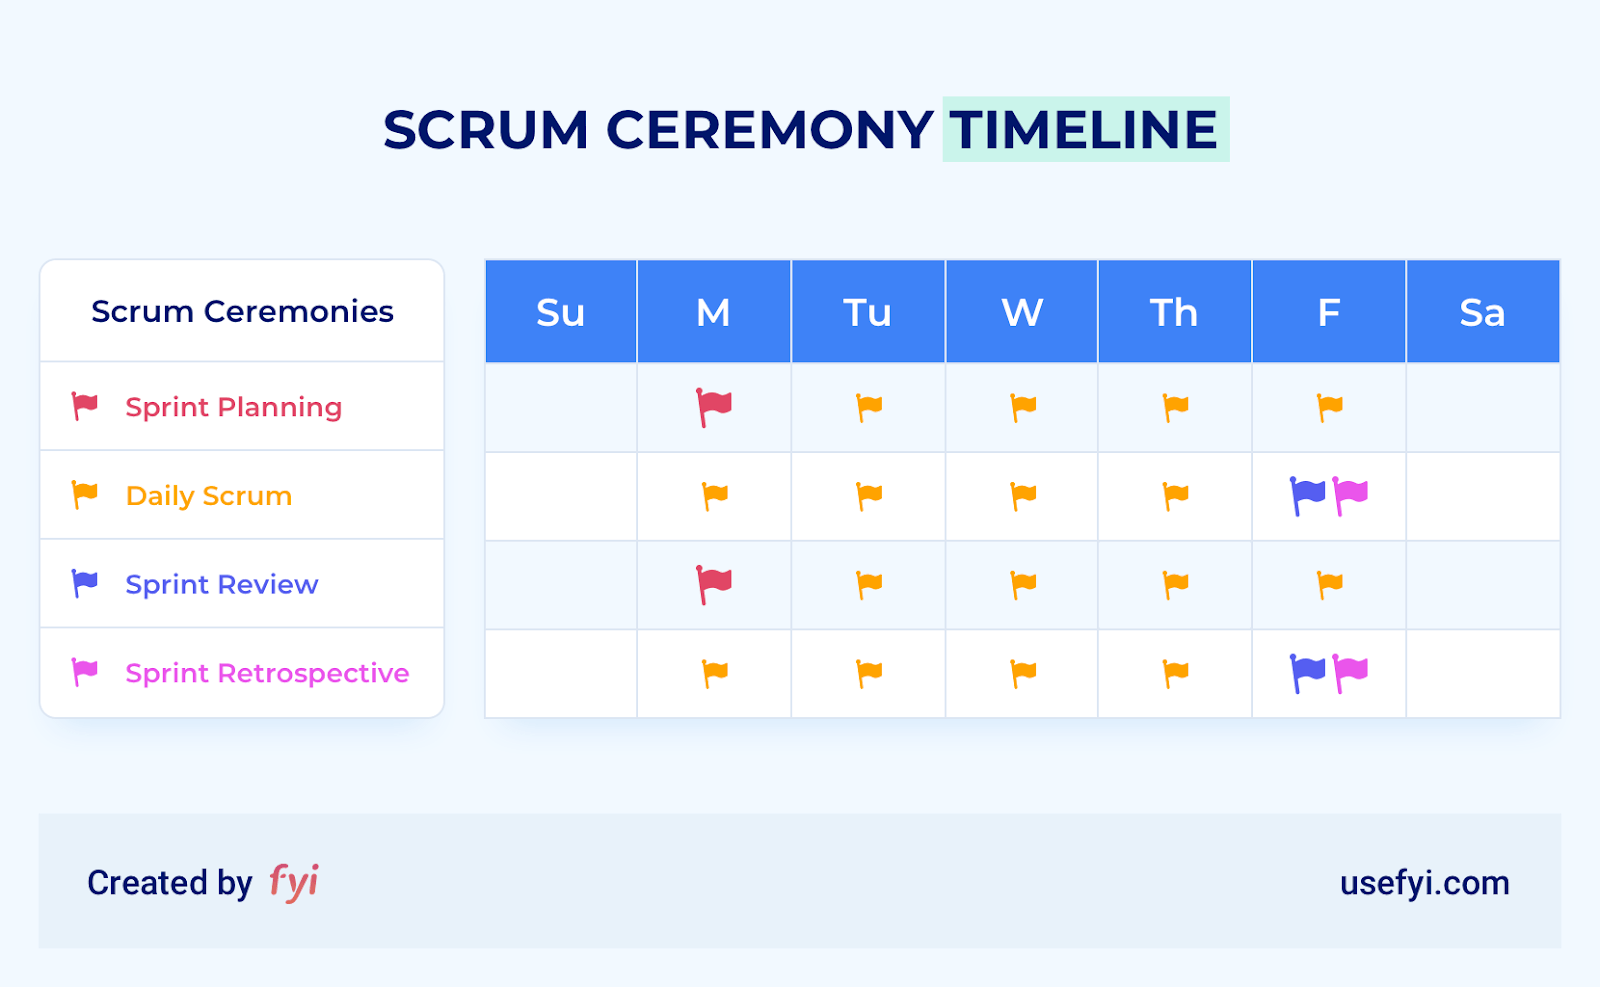 timeline of scrum ceremonies